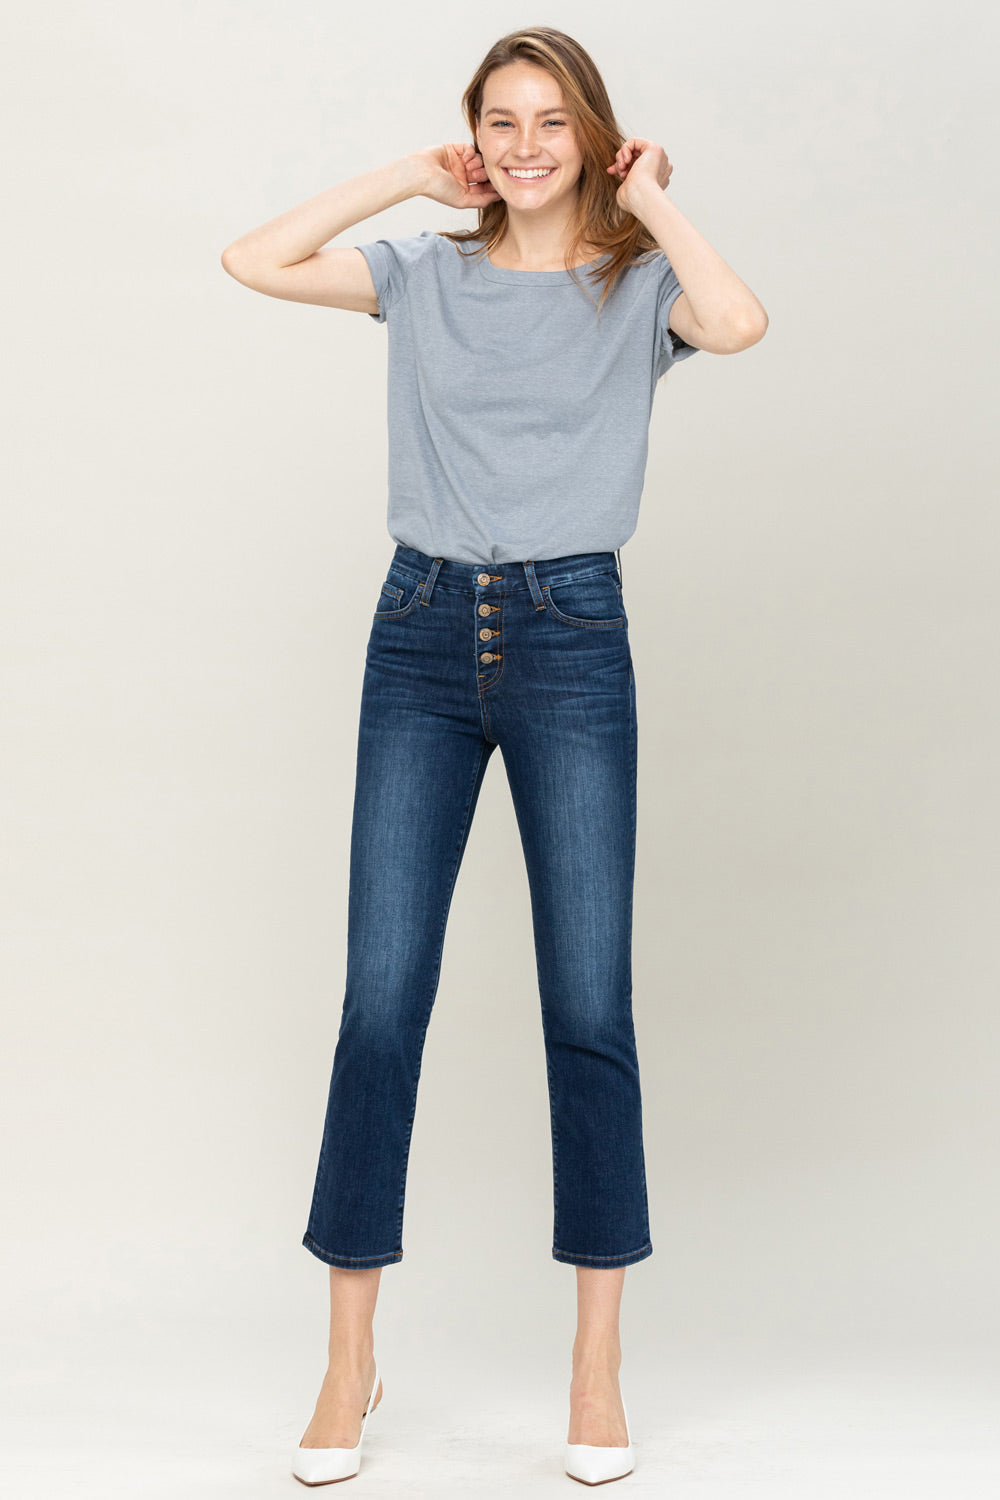 Button up high rise jeans - mammoth